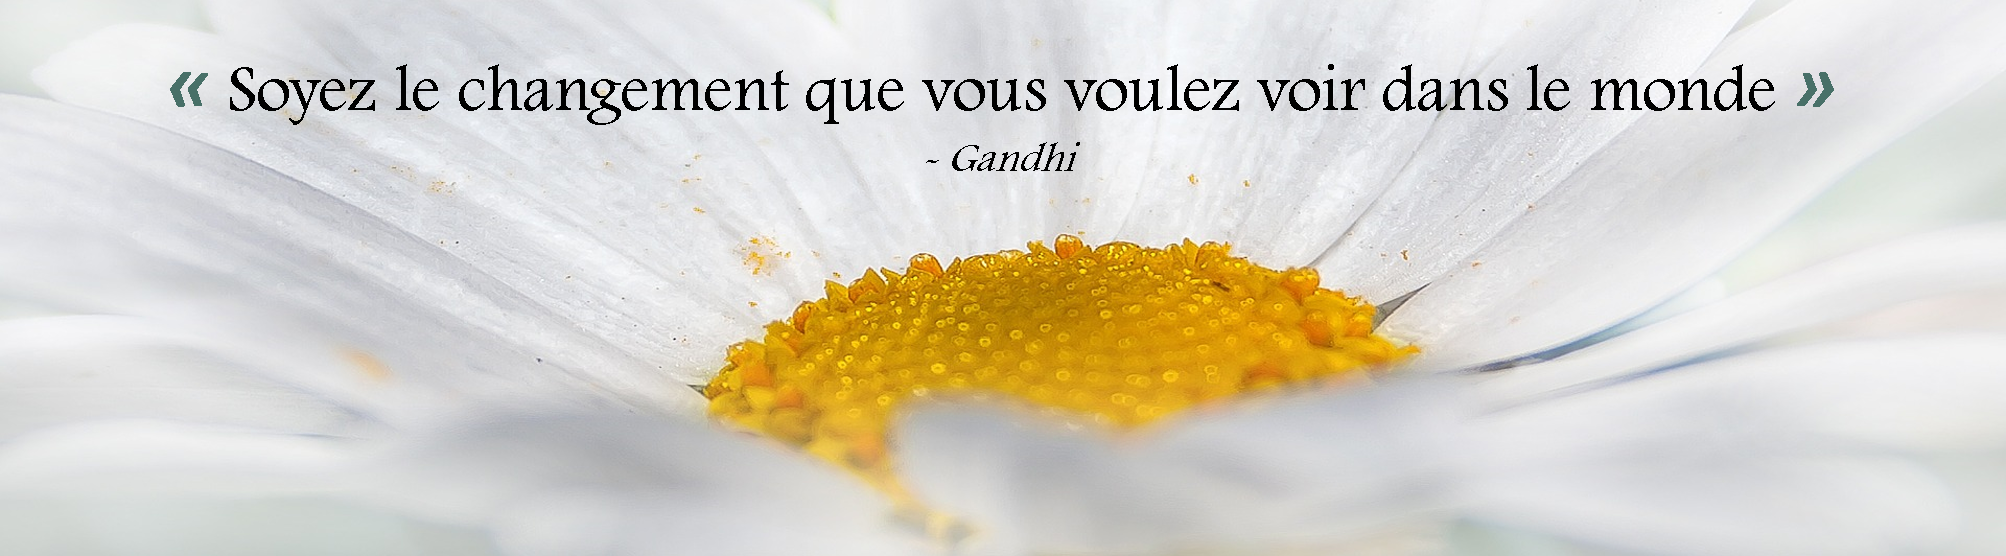 Banniere citation Gandhi 2